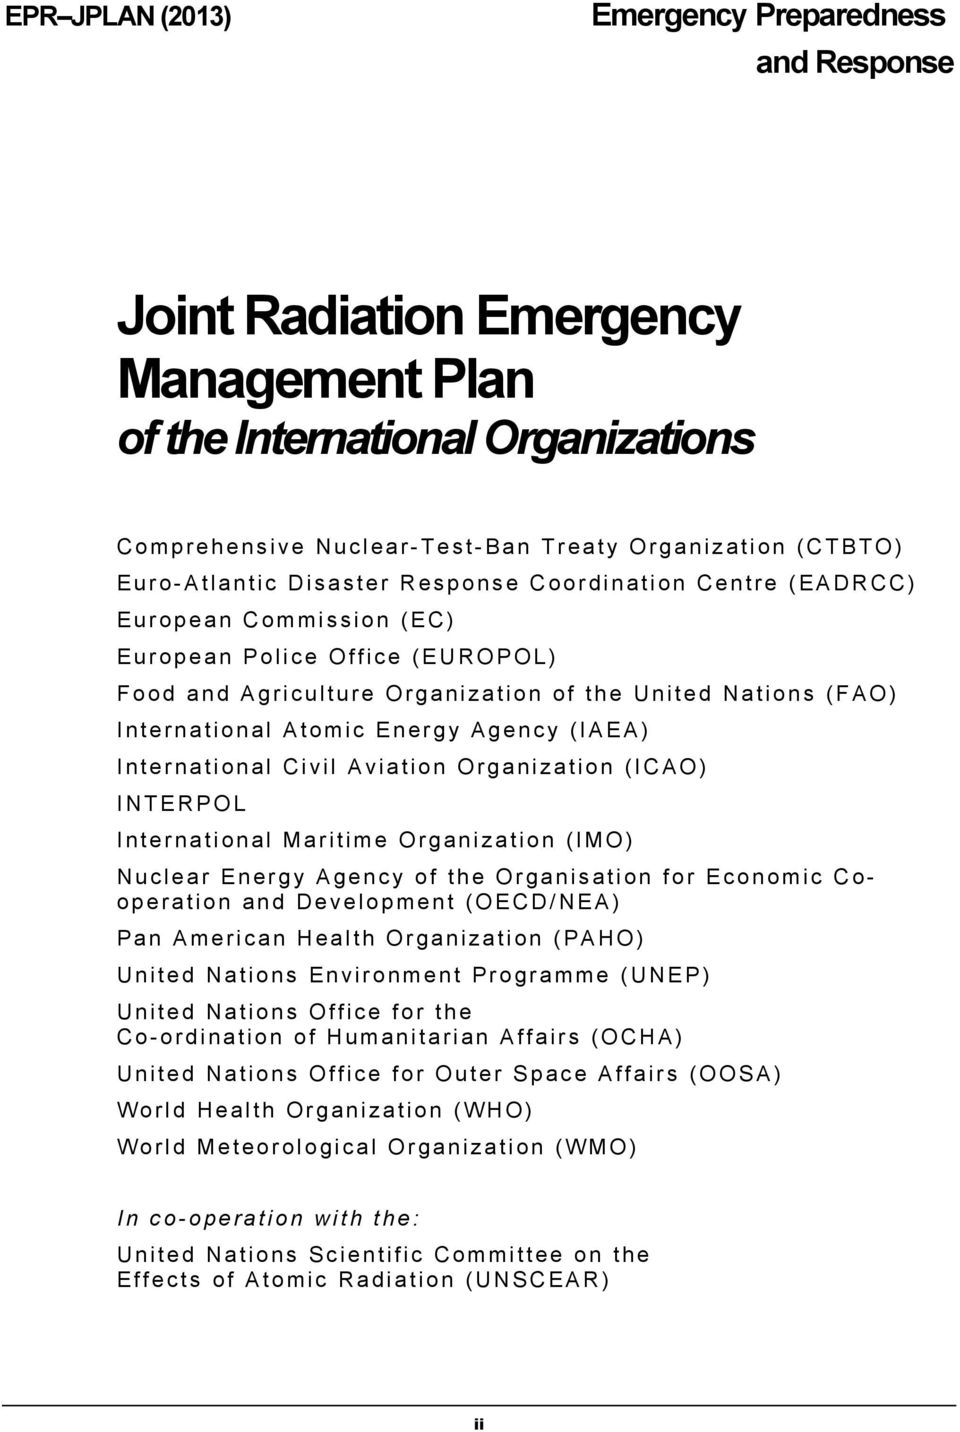 Atomic Energy Agency (IAEA) International Civil Aviation Organization (ICAO) INTERPOL International Maritime Organization (IMO) Nuclear Energy Agency of the Organisation for Economic Cooperation and